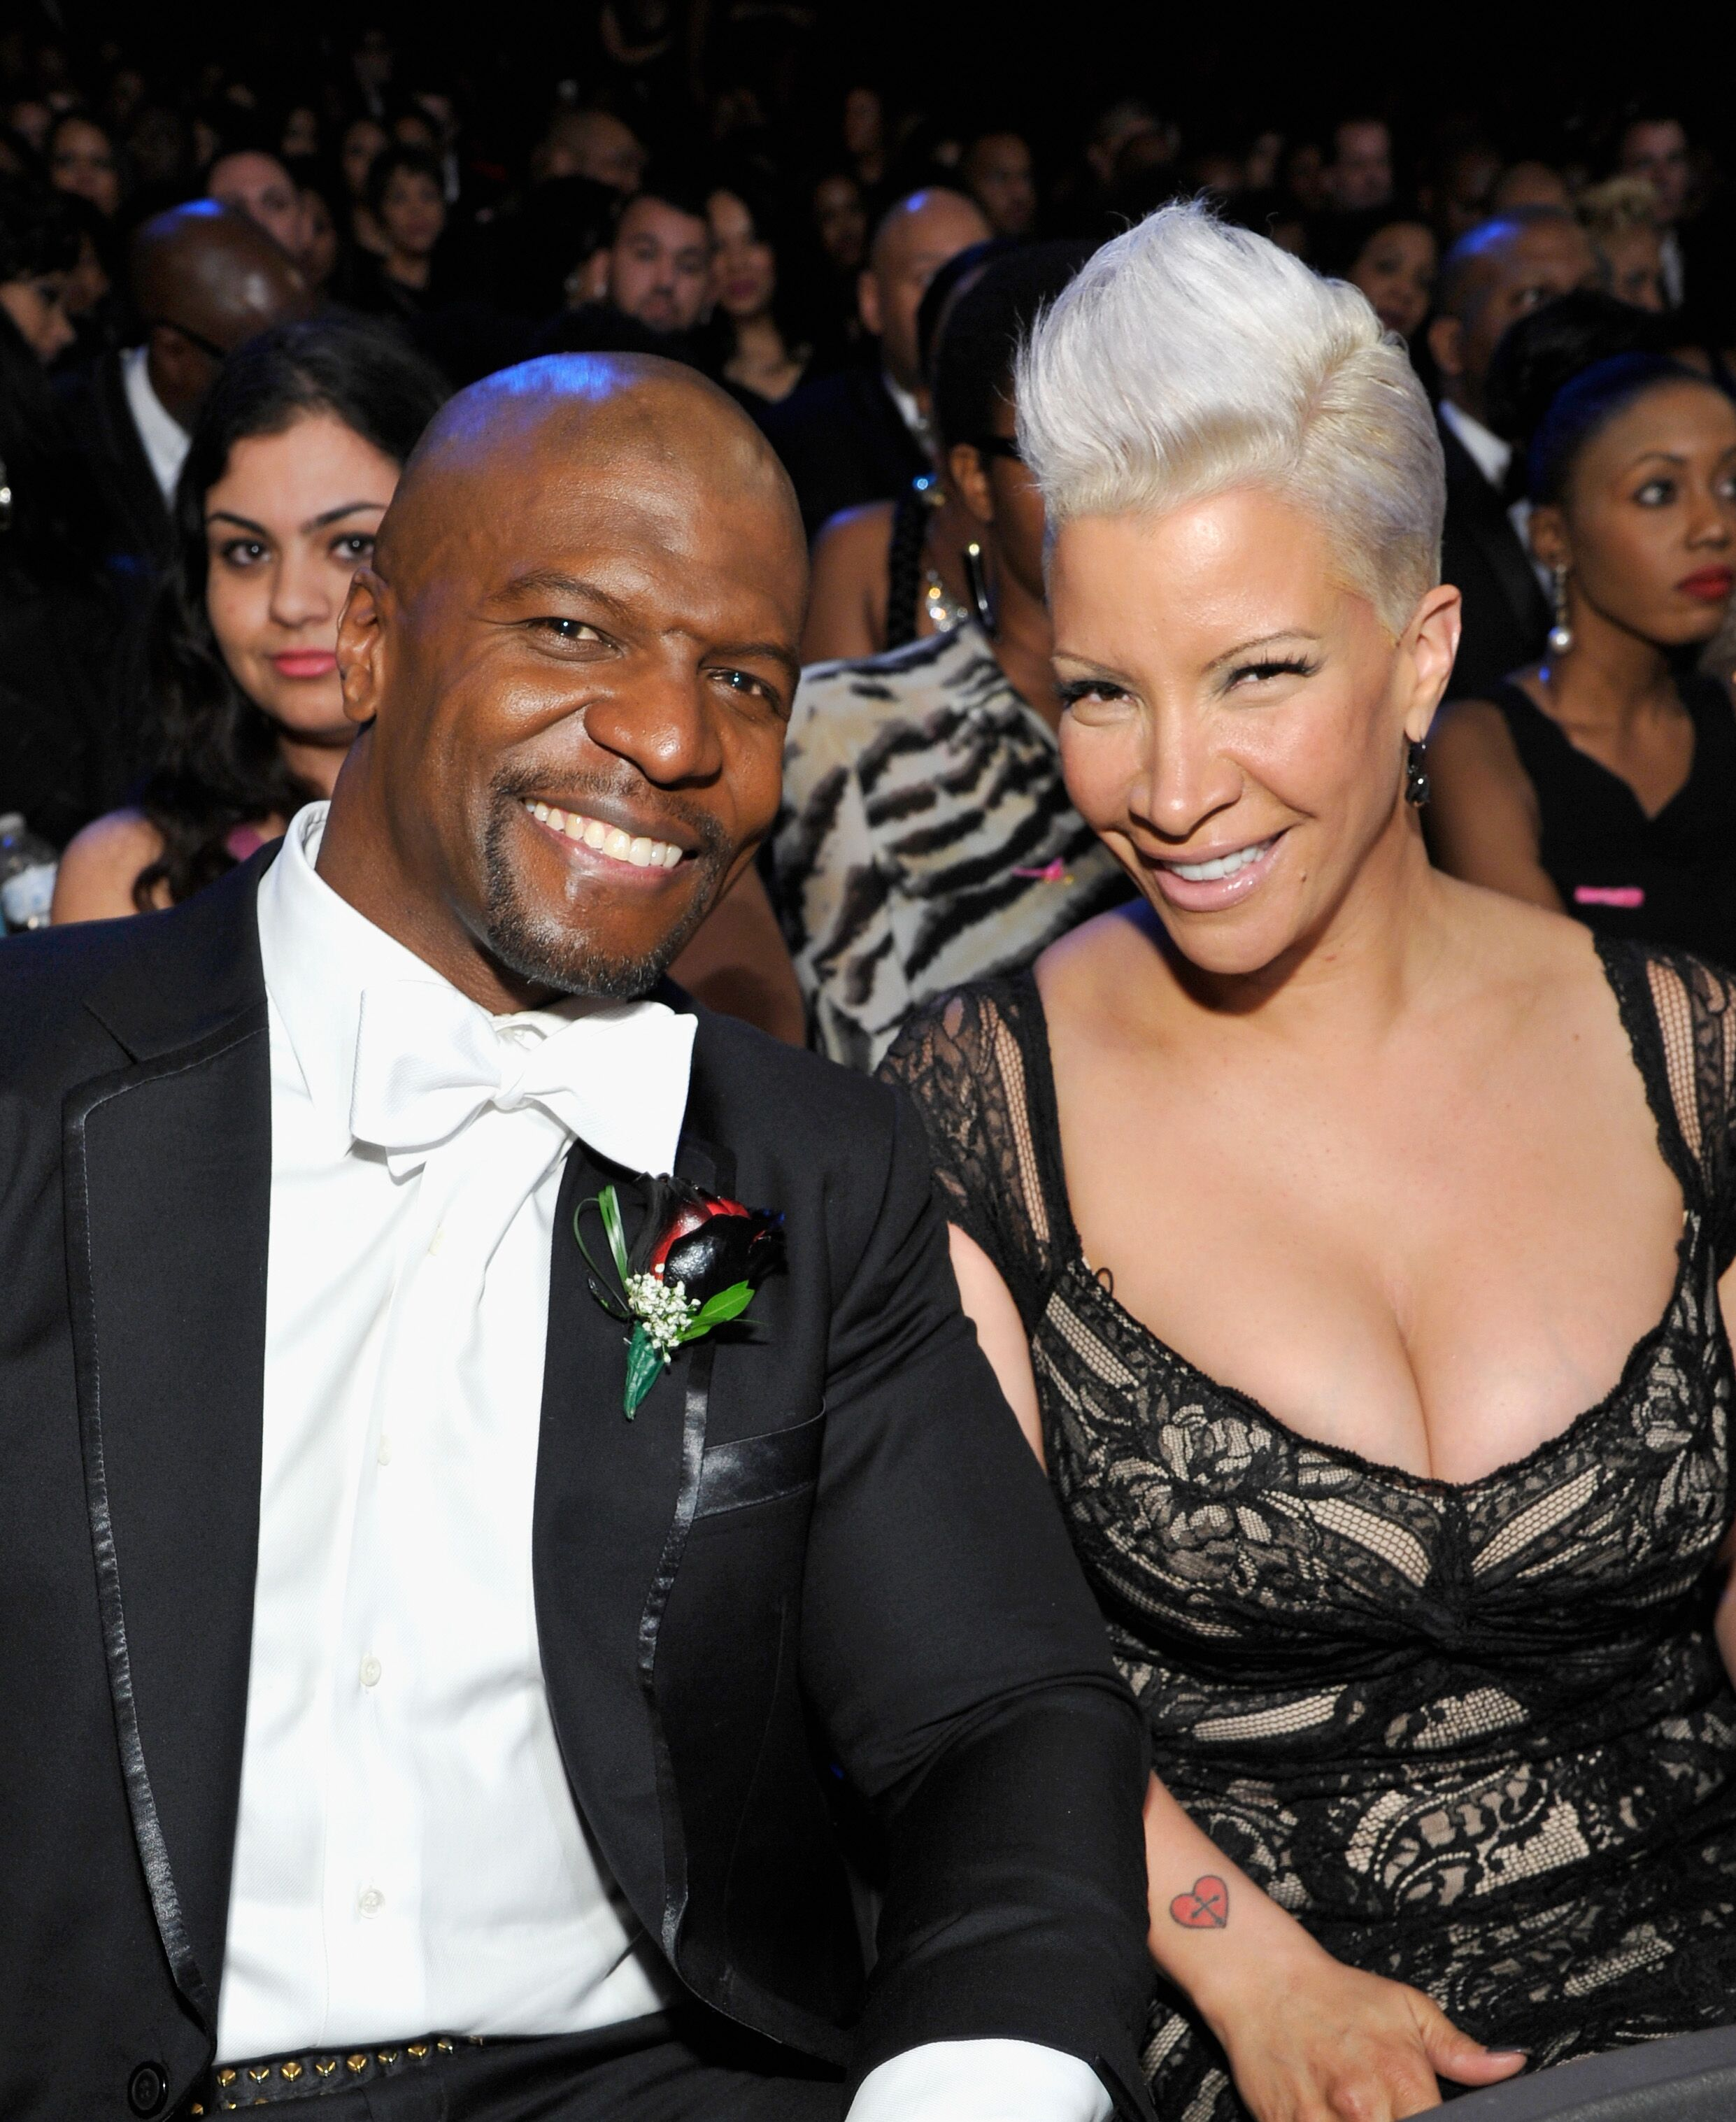 Terry Crews (L) et son épouse Rebecca King-Crews assiste à la 45e NAACP Image Awards présenté par TV One au Pasadena Civic Auditorium. | Source : Getty Images